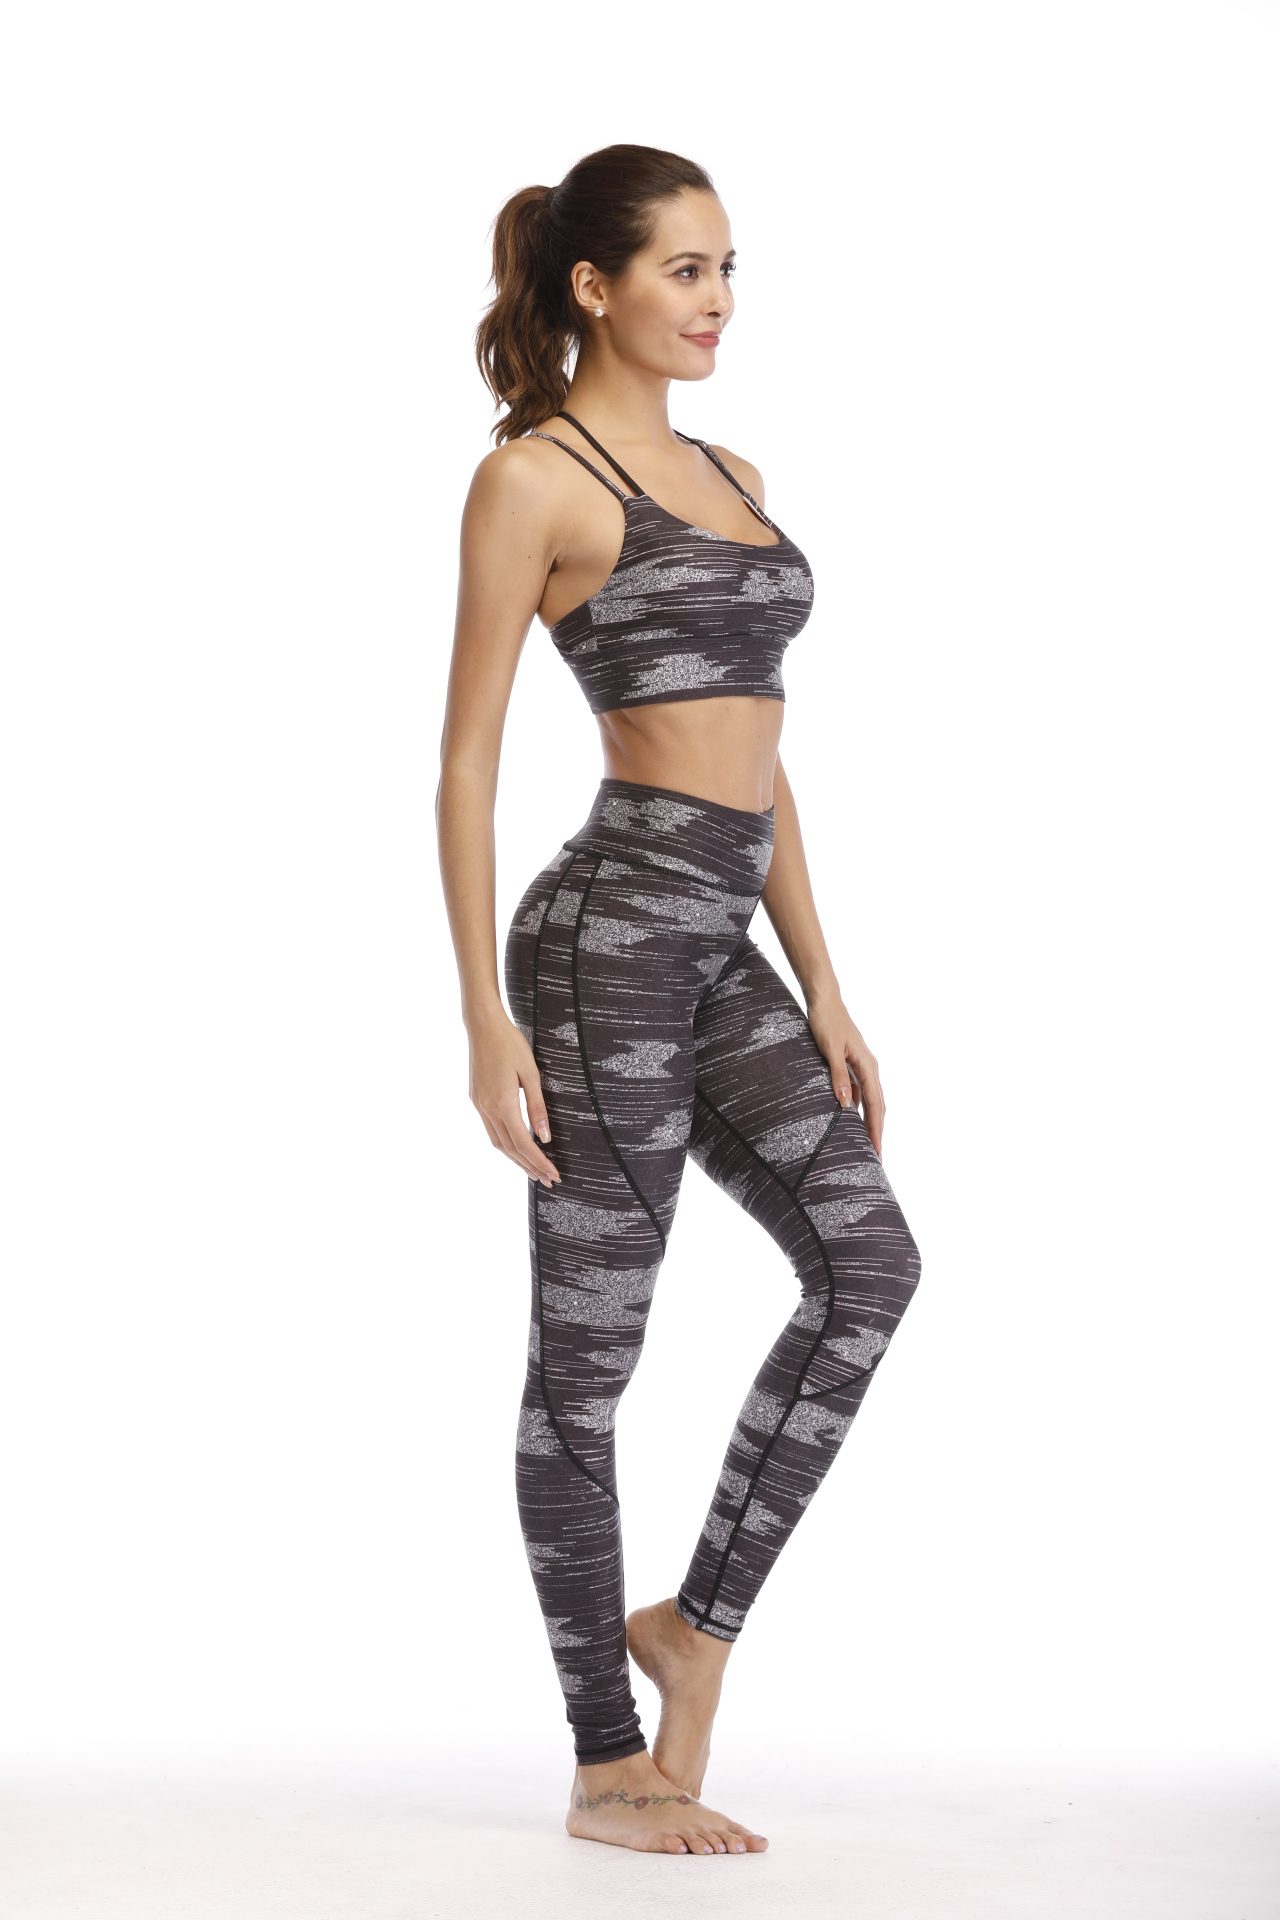 Sublimation Fitness Wear Women Yoga Set Bra And Leggings Wit